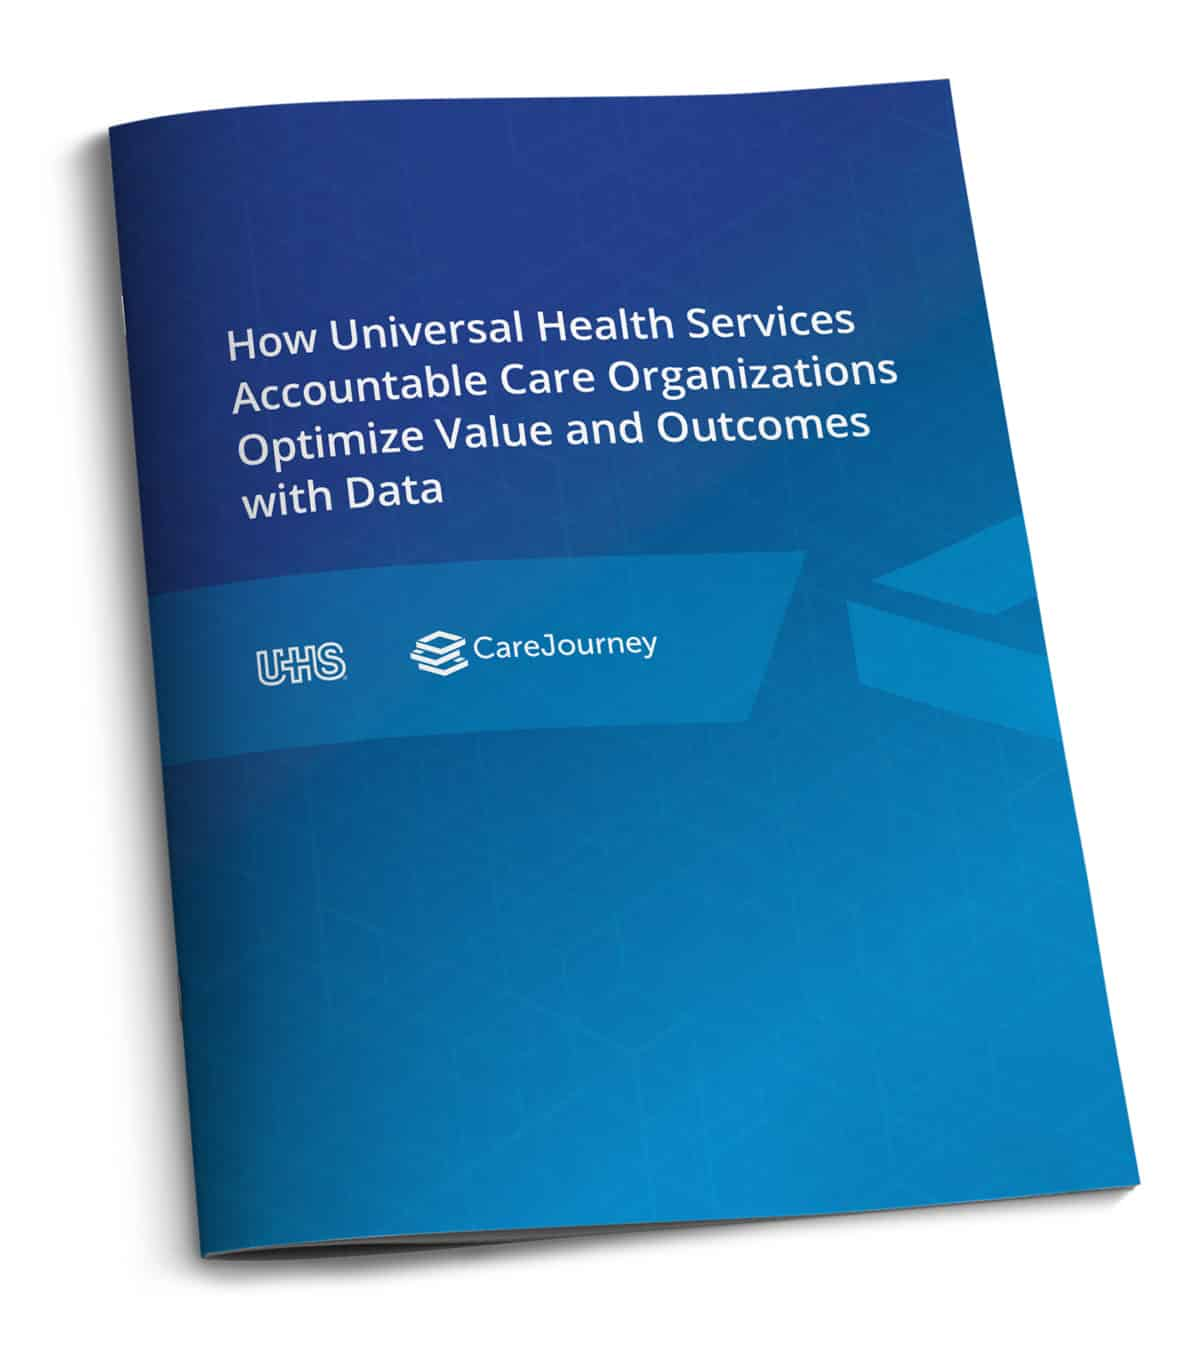 CareJourney White Paper How UHS ACOs Optimize Value and Outcomes with Data